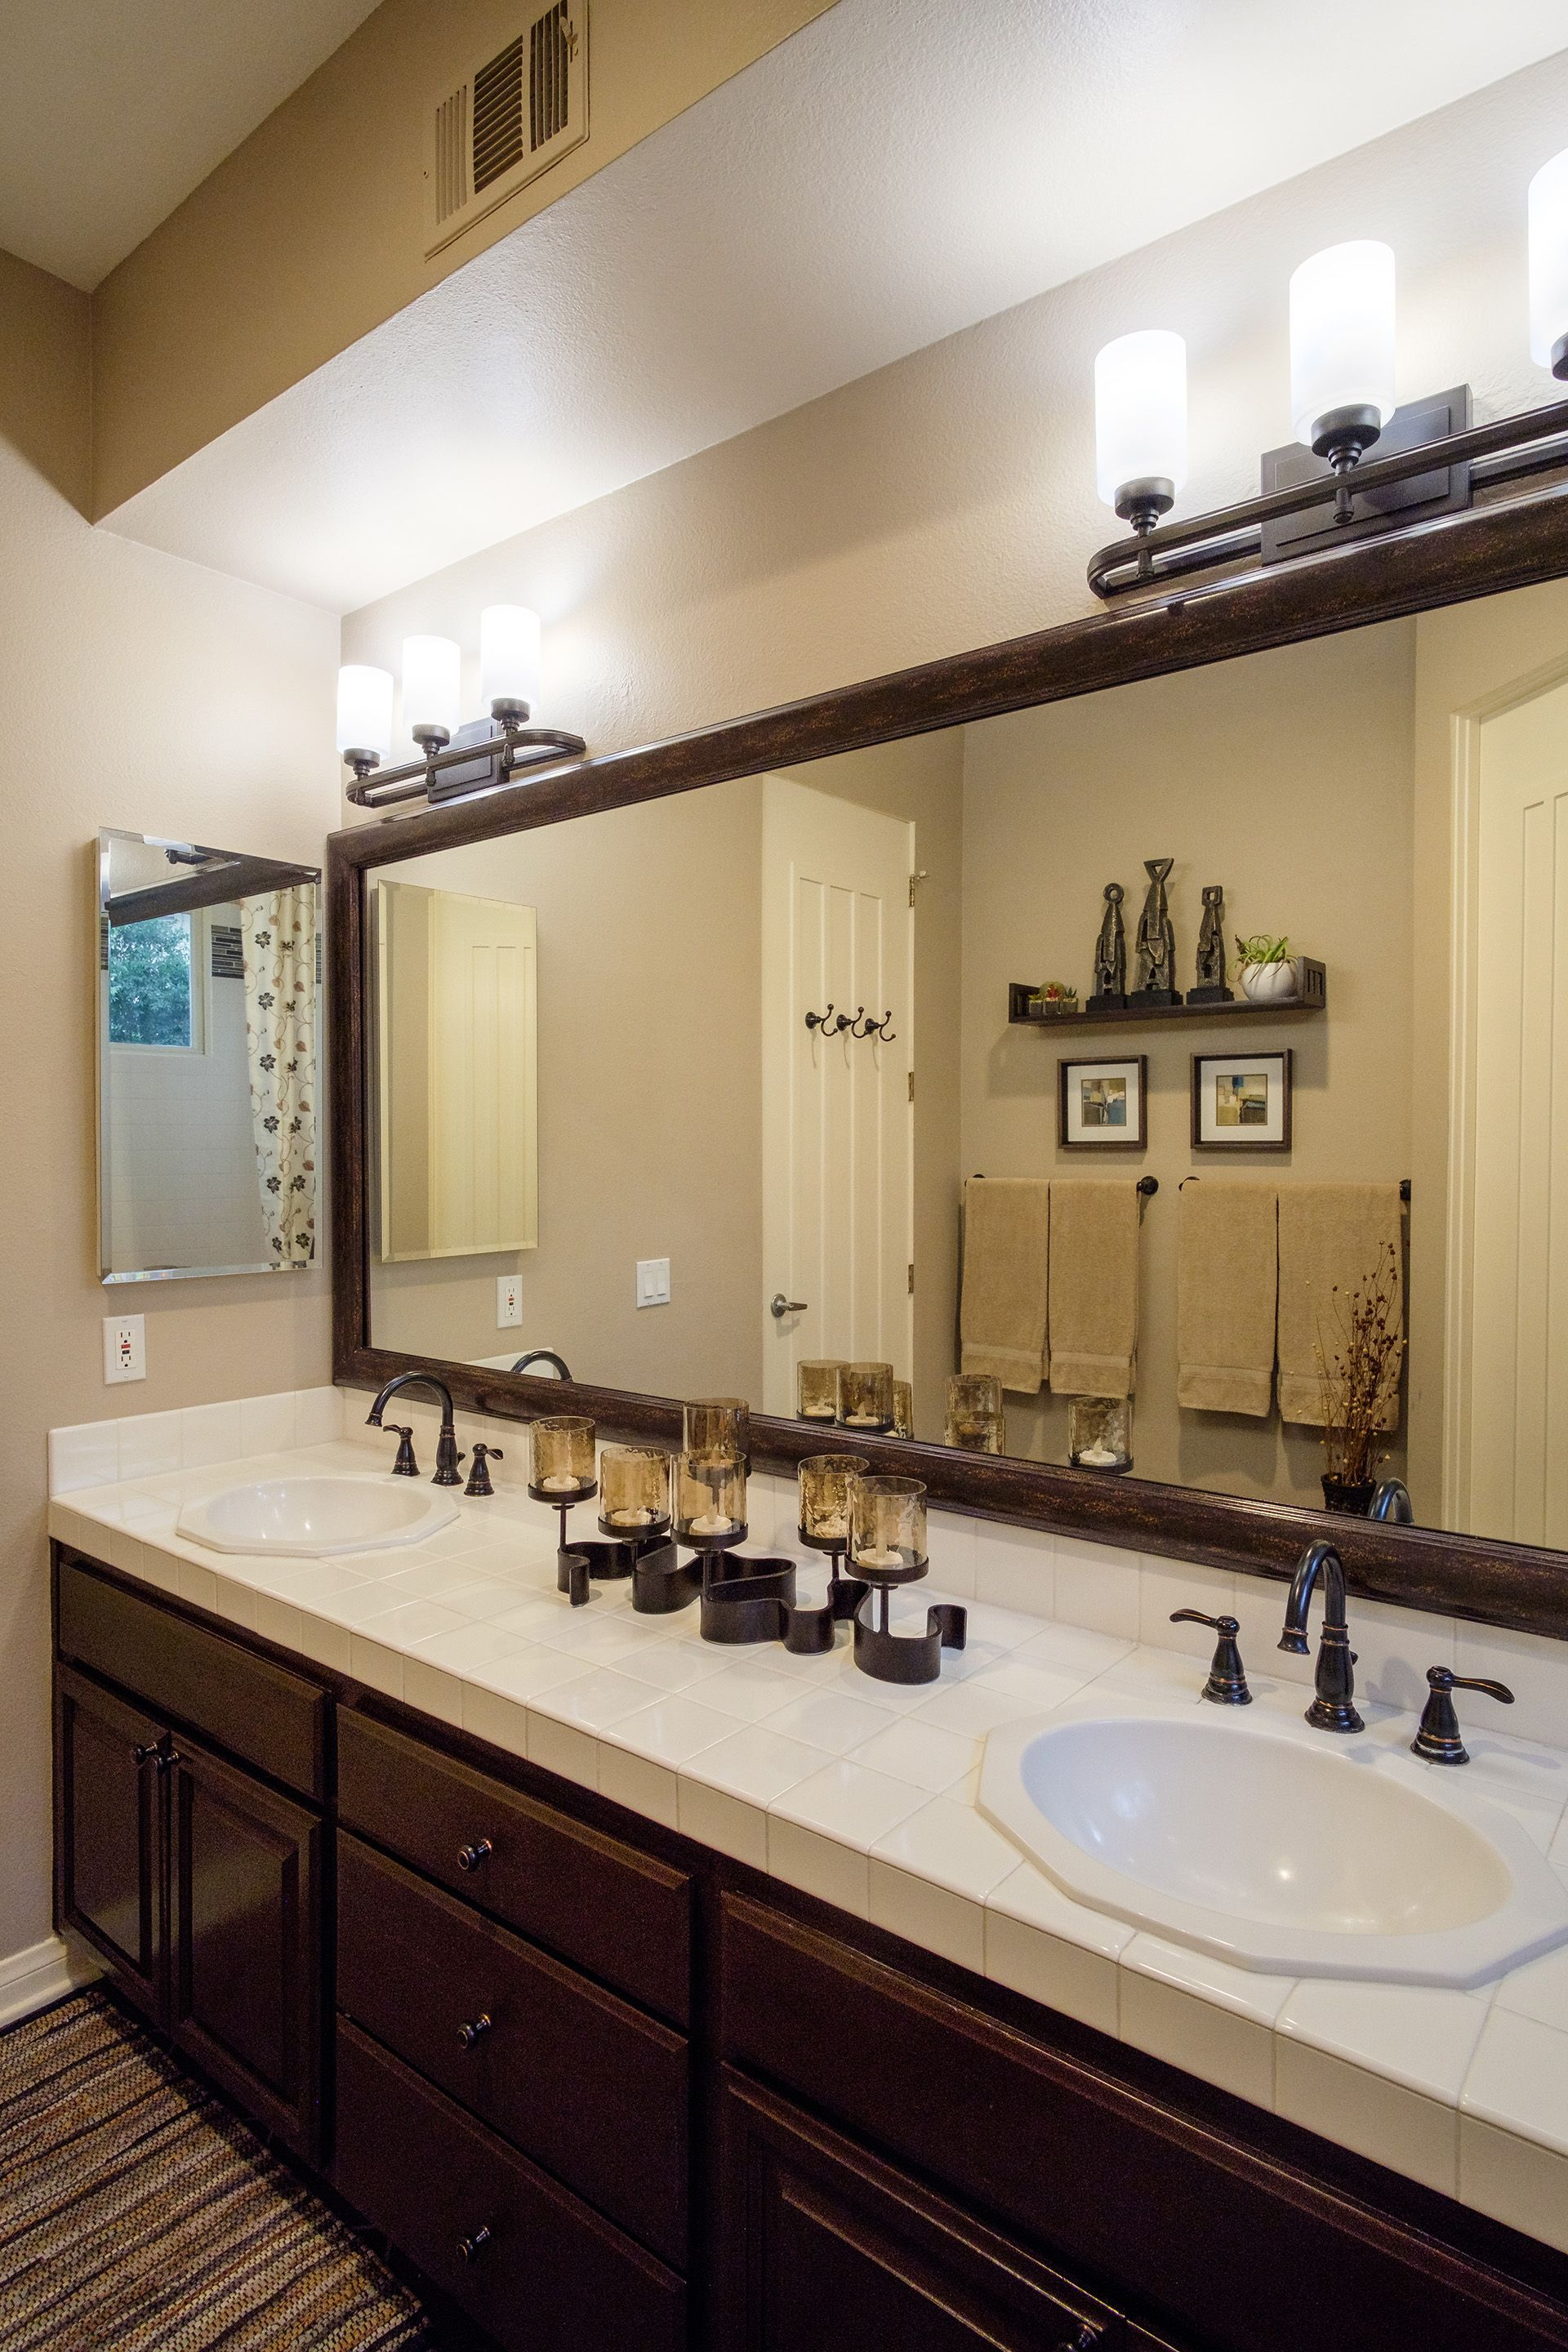 Visually Enlarge And Freshen A Dated Bathroom With Wood Tone Mirror